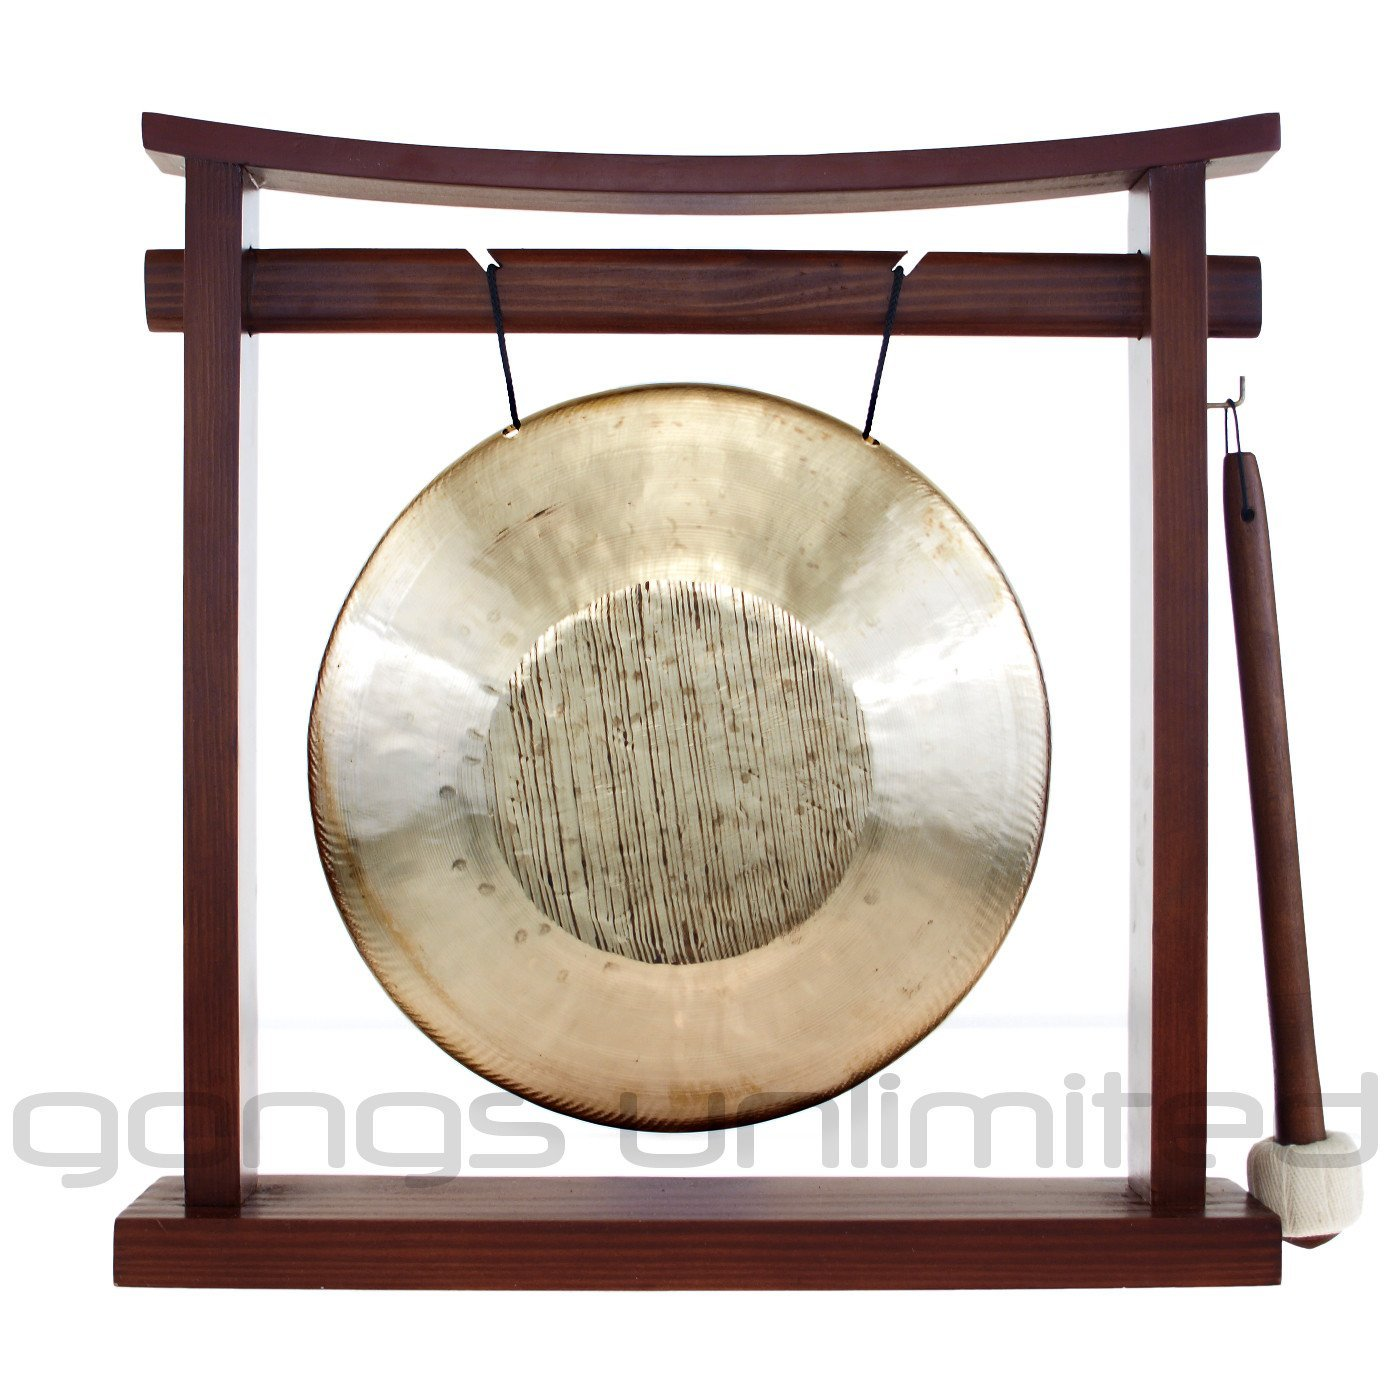 7'' to 8.5'' Gongs on the Pretty Chill Gong Stand by Unlimited